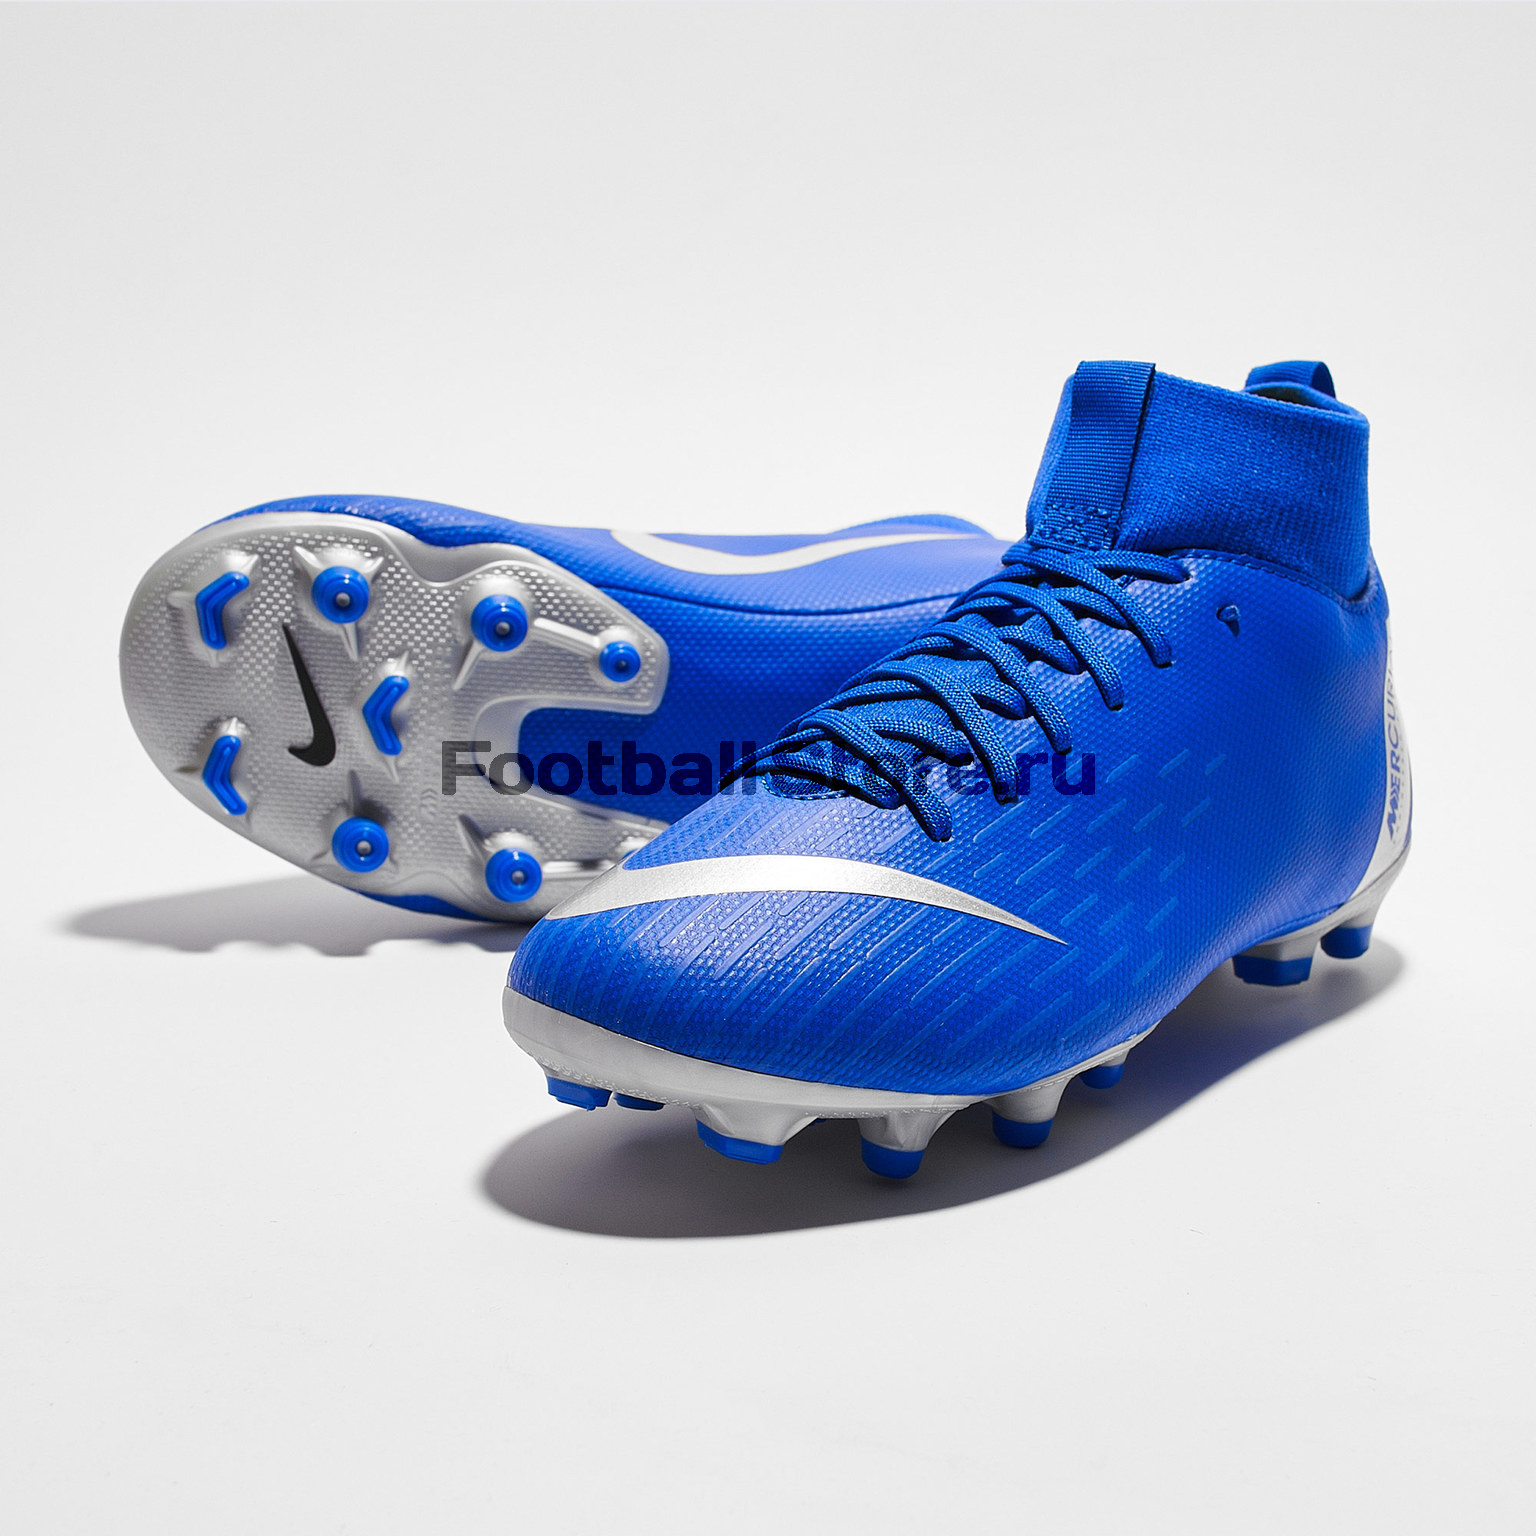 Бутсы детские Nike Superfly 6 Academy GS FG/MG AH7337-400 бутсы детские nike superfly academy gs cr7 fg mg aj3111 600